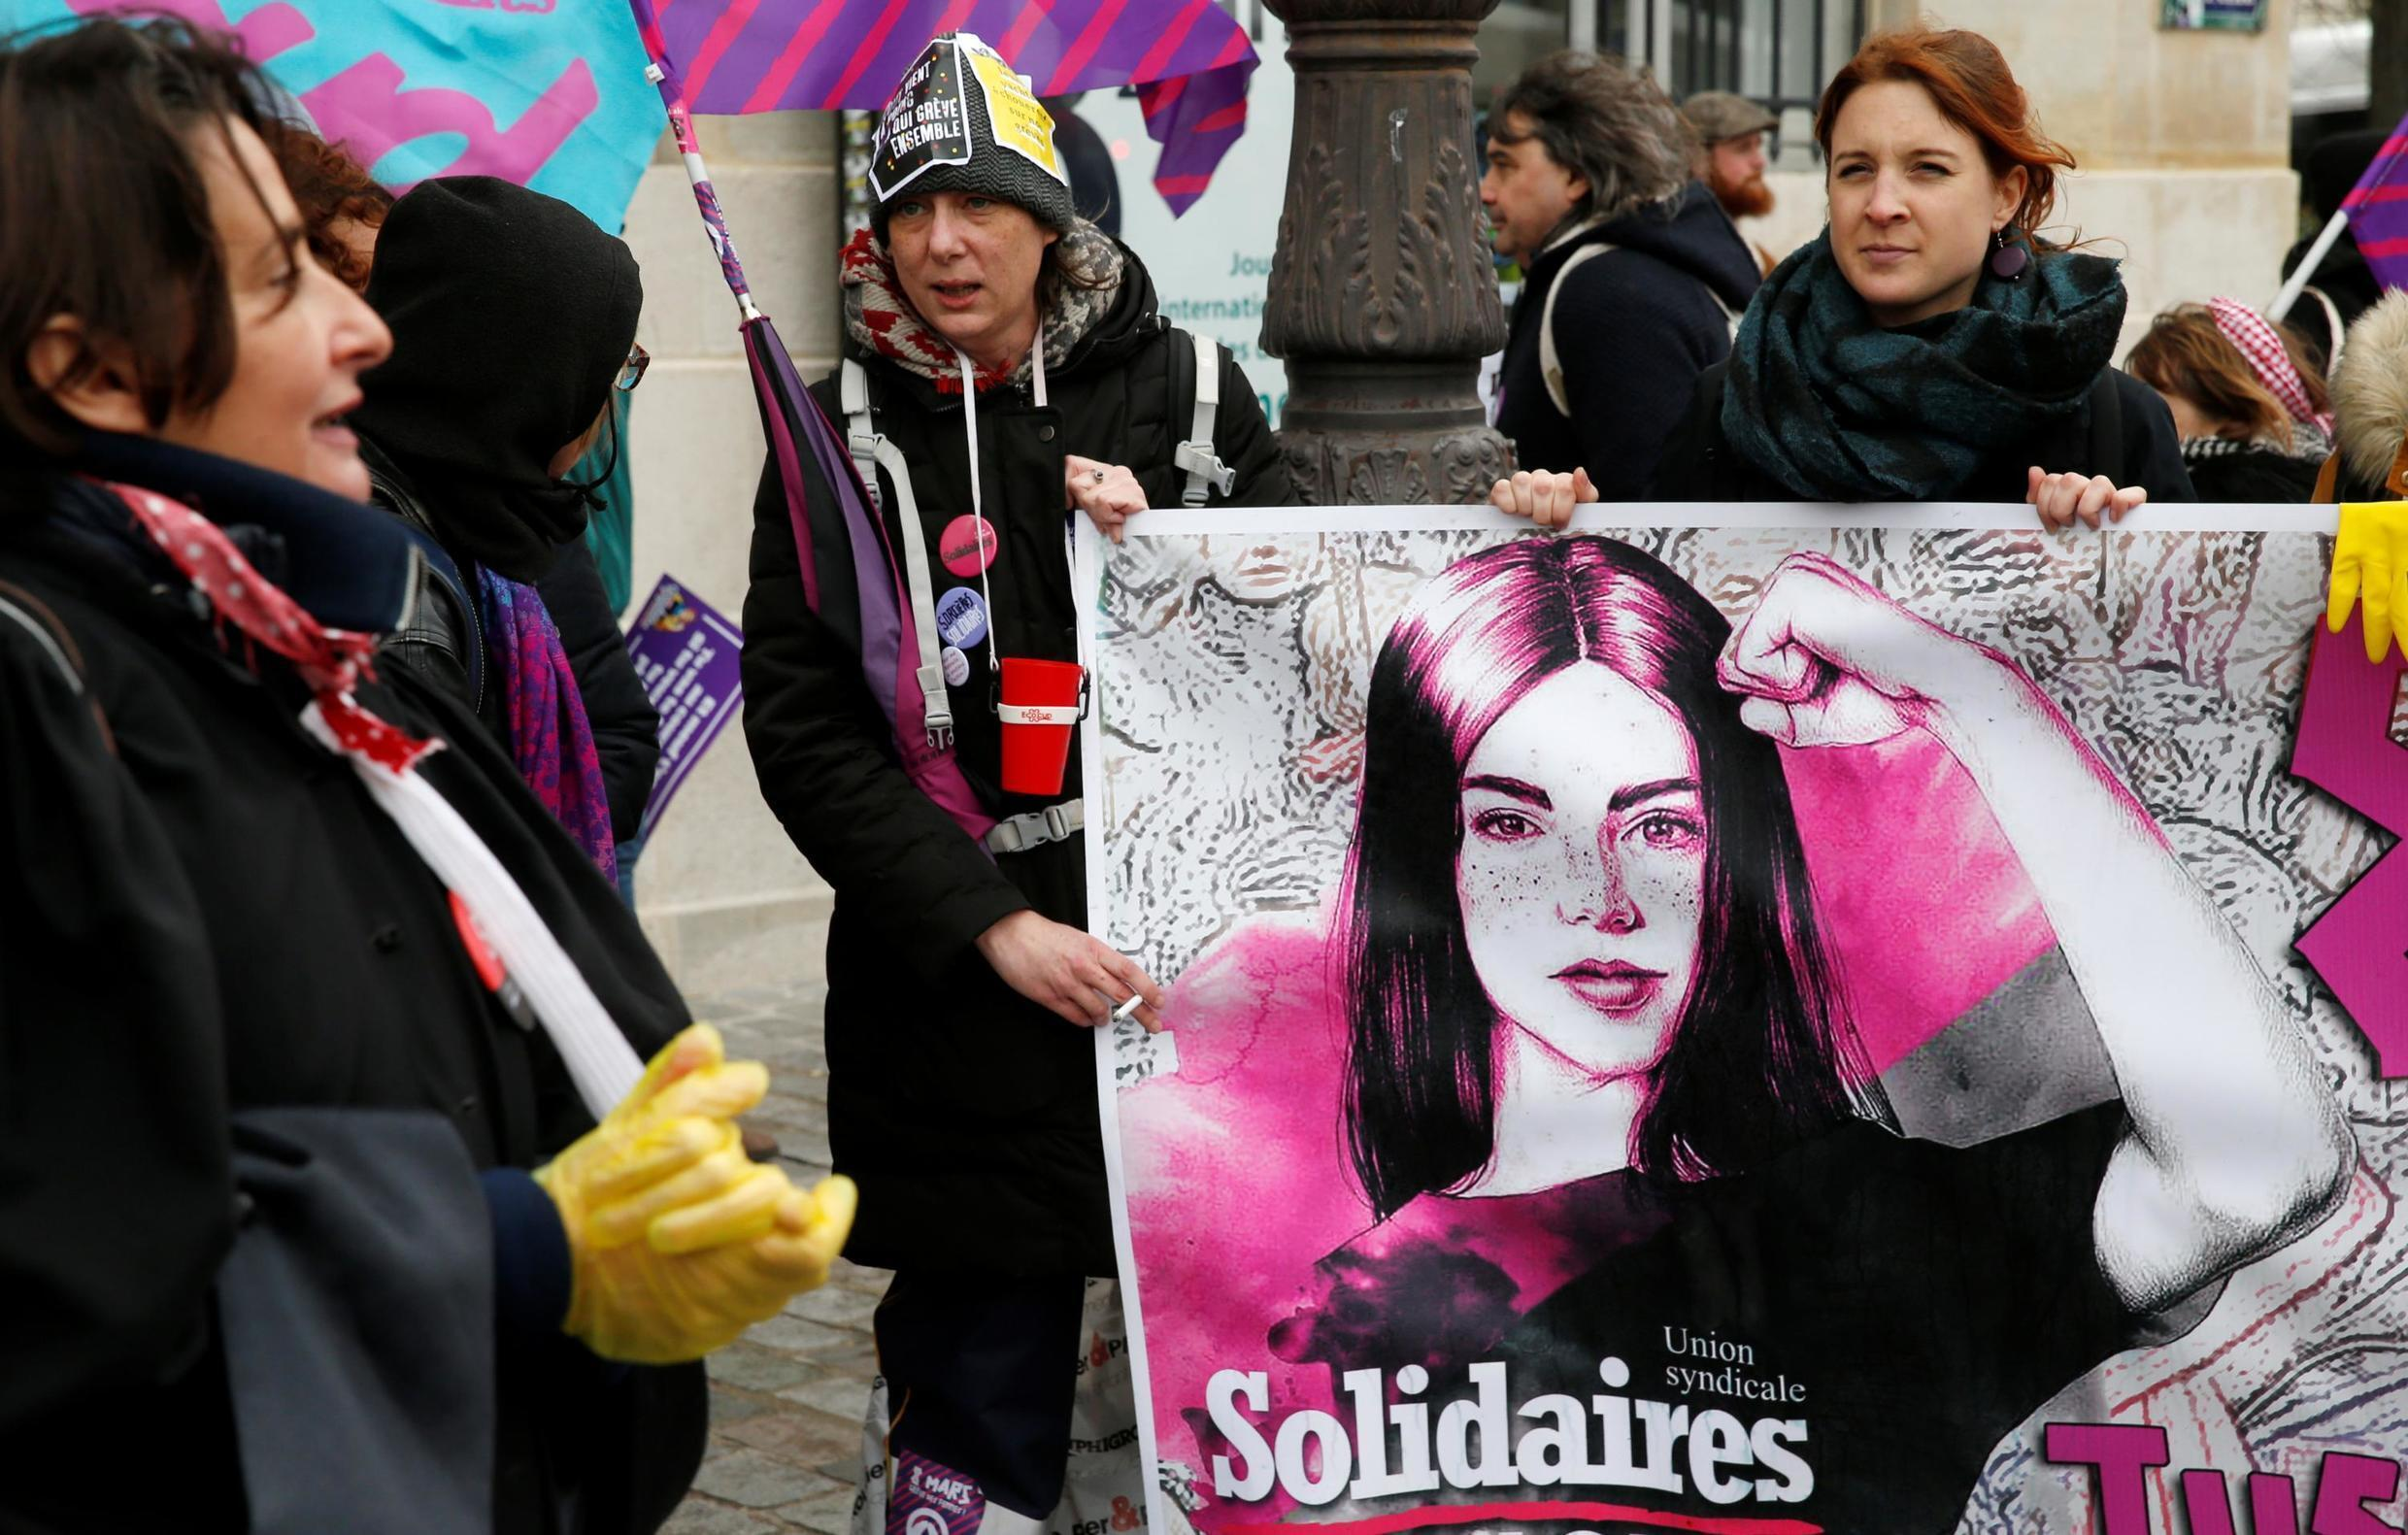 Demonstrators at the start of the march in Paris for equality on Internatoinal Women's Day, 8 March 2020.